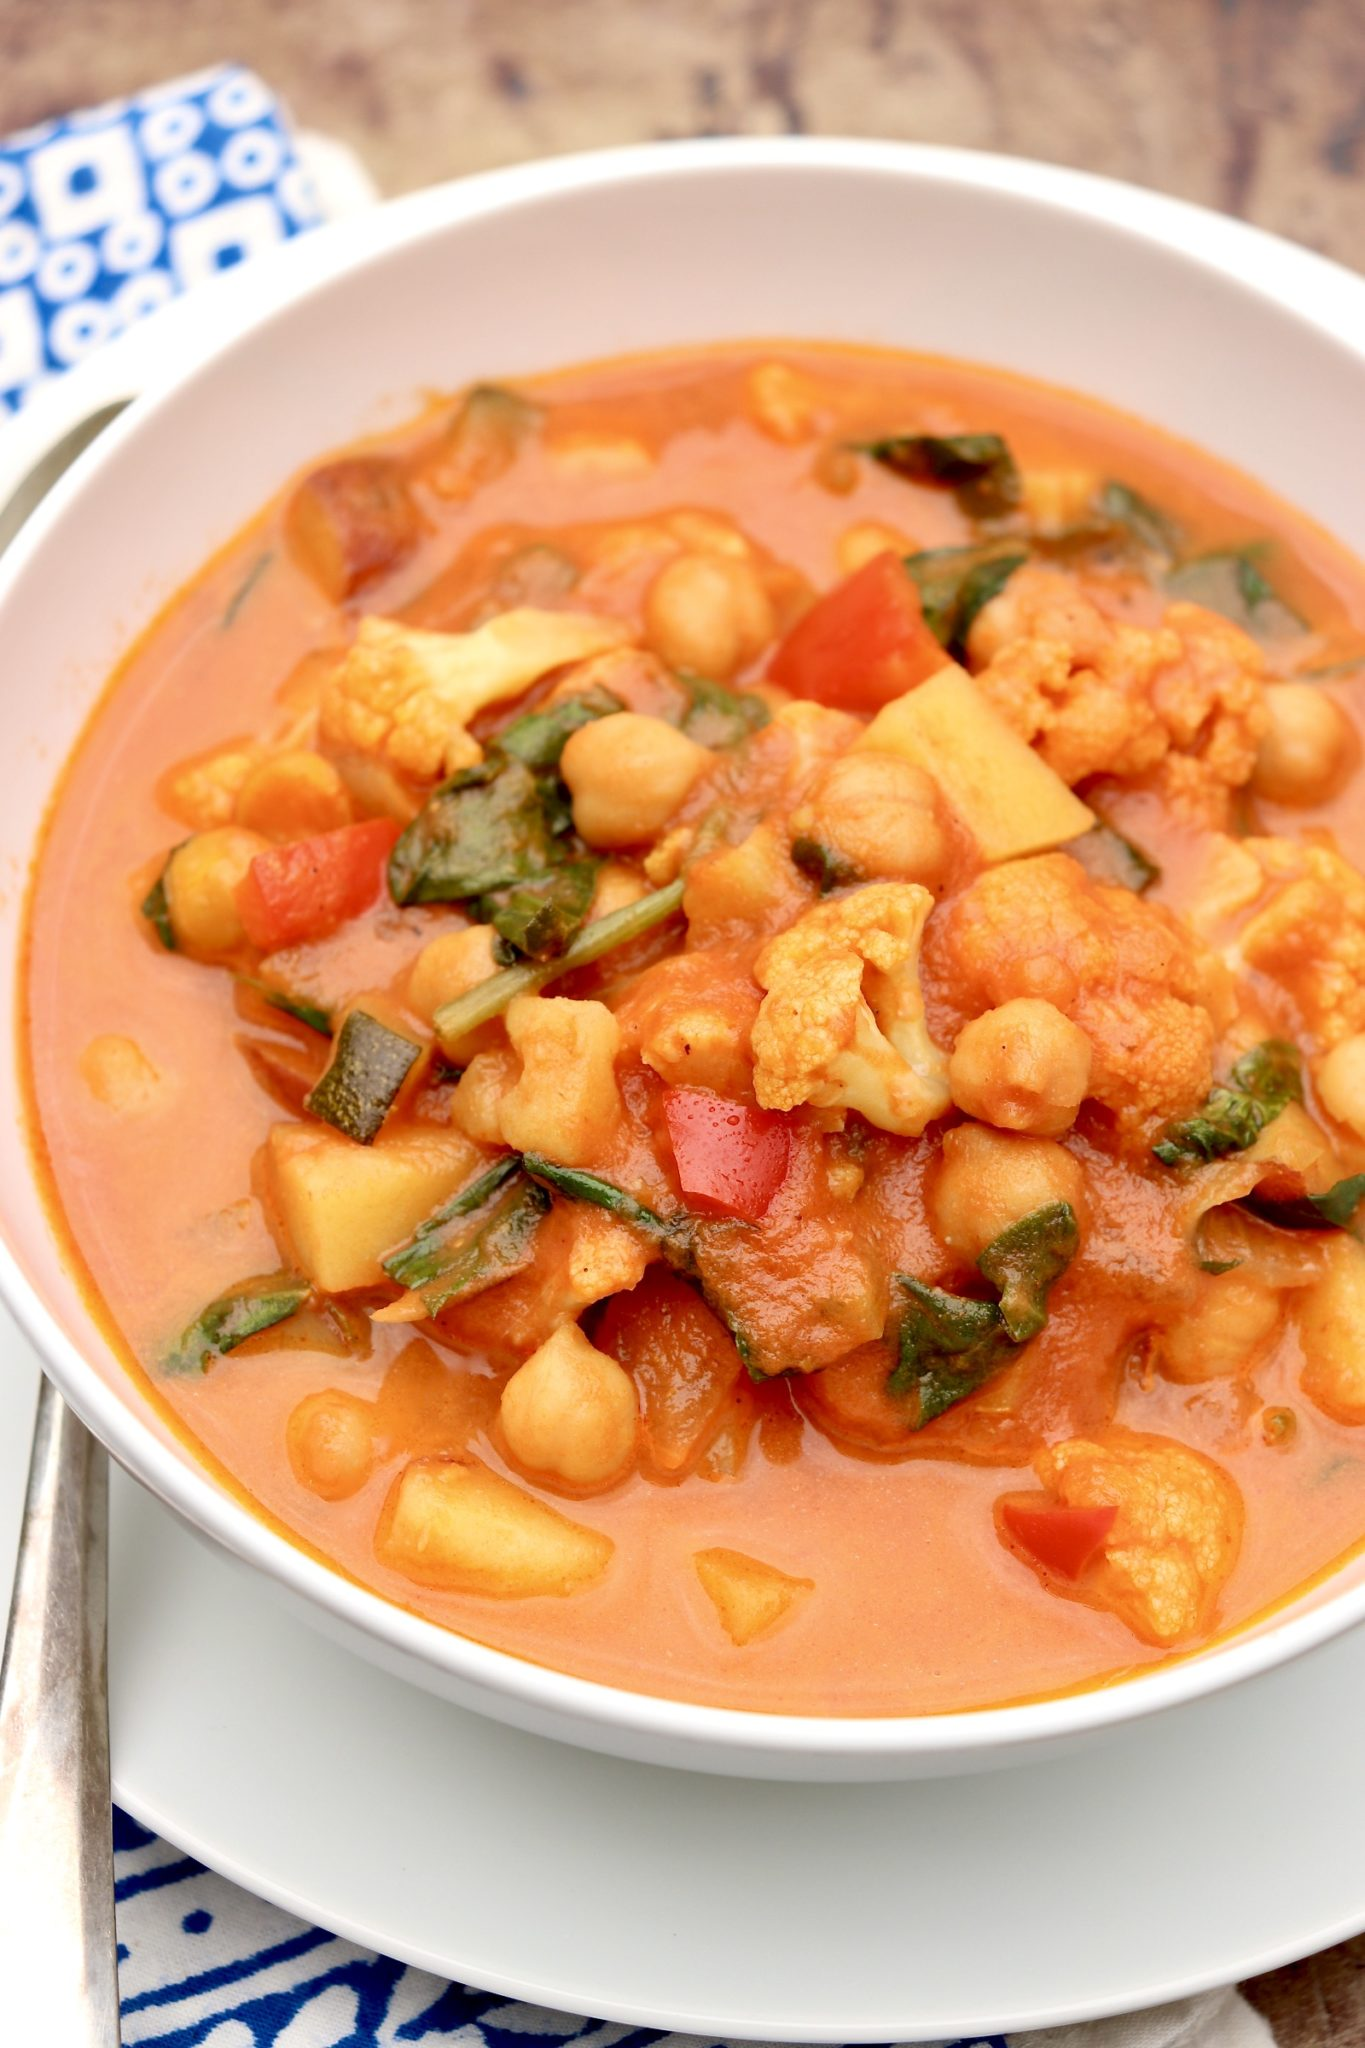 There are three cooking options for this deliciously hearty soup that satisfies even the most diehard meat eaters. The big yield is perfect for meal prep and tastes great all week long.